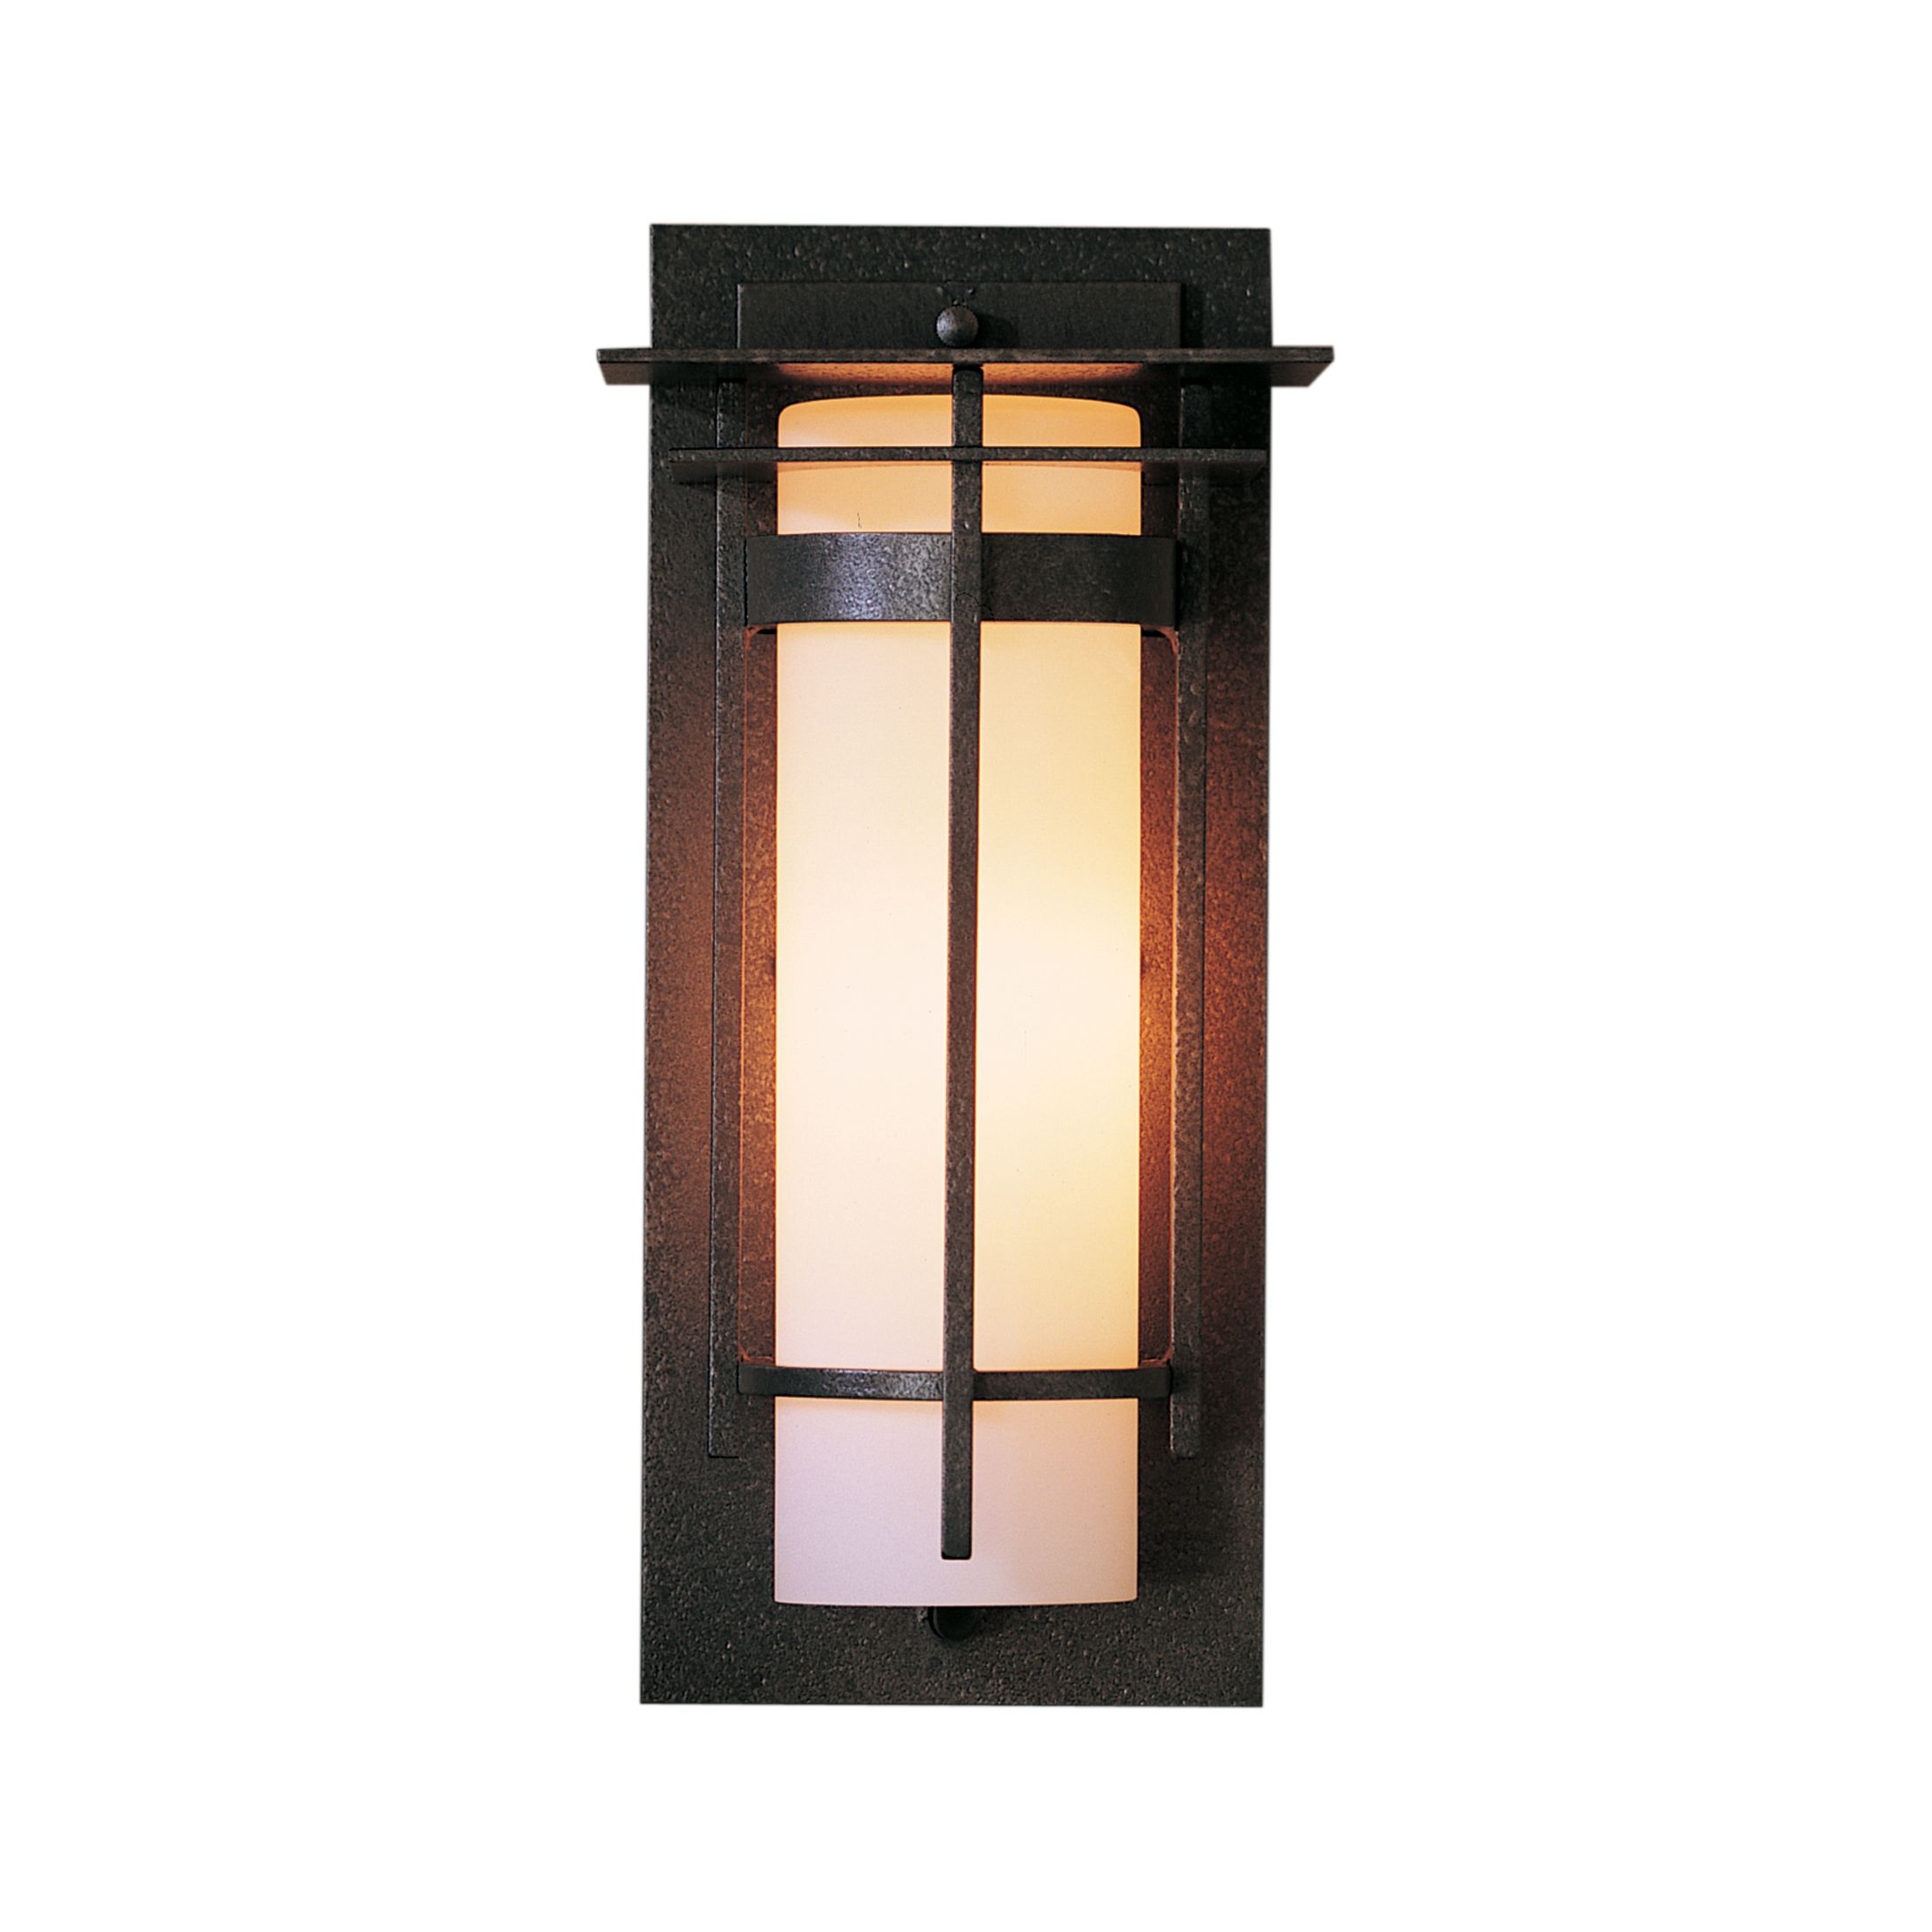 Thumbnail for Banded with Top Plate Small Outdoor Sconce